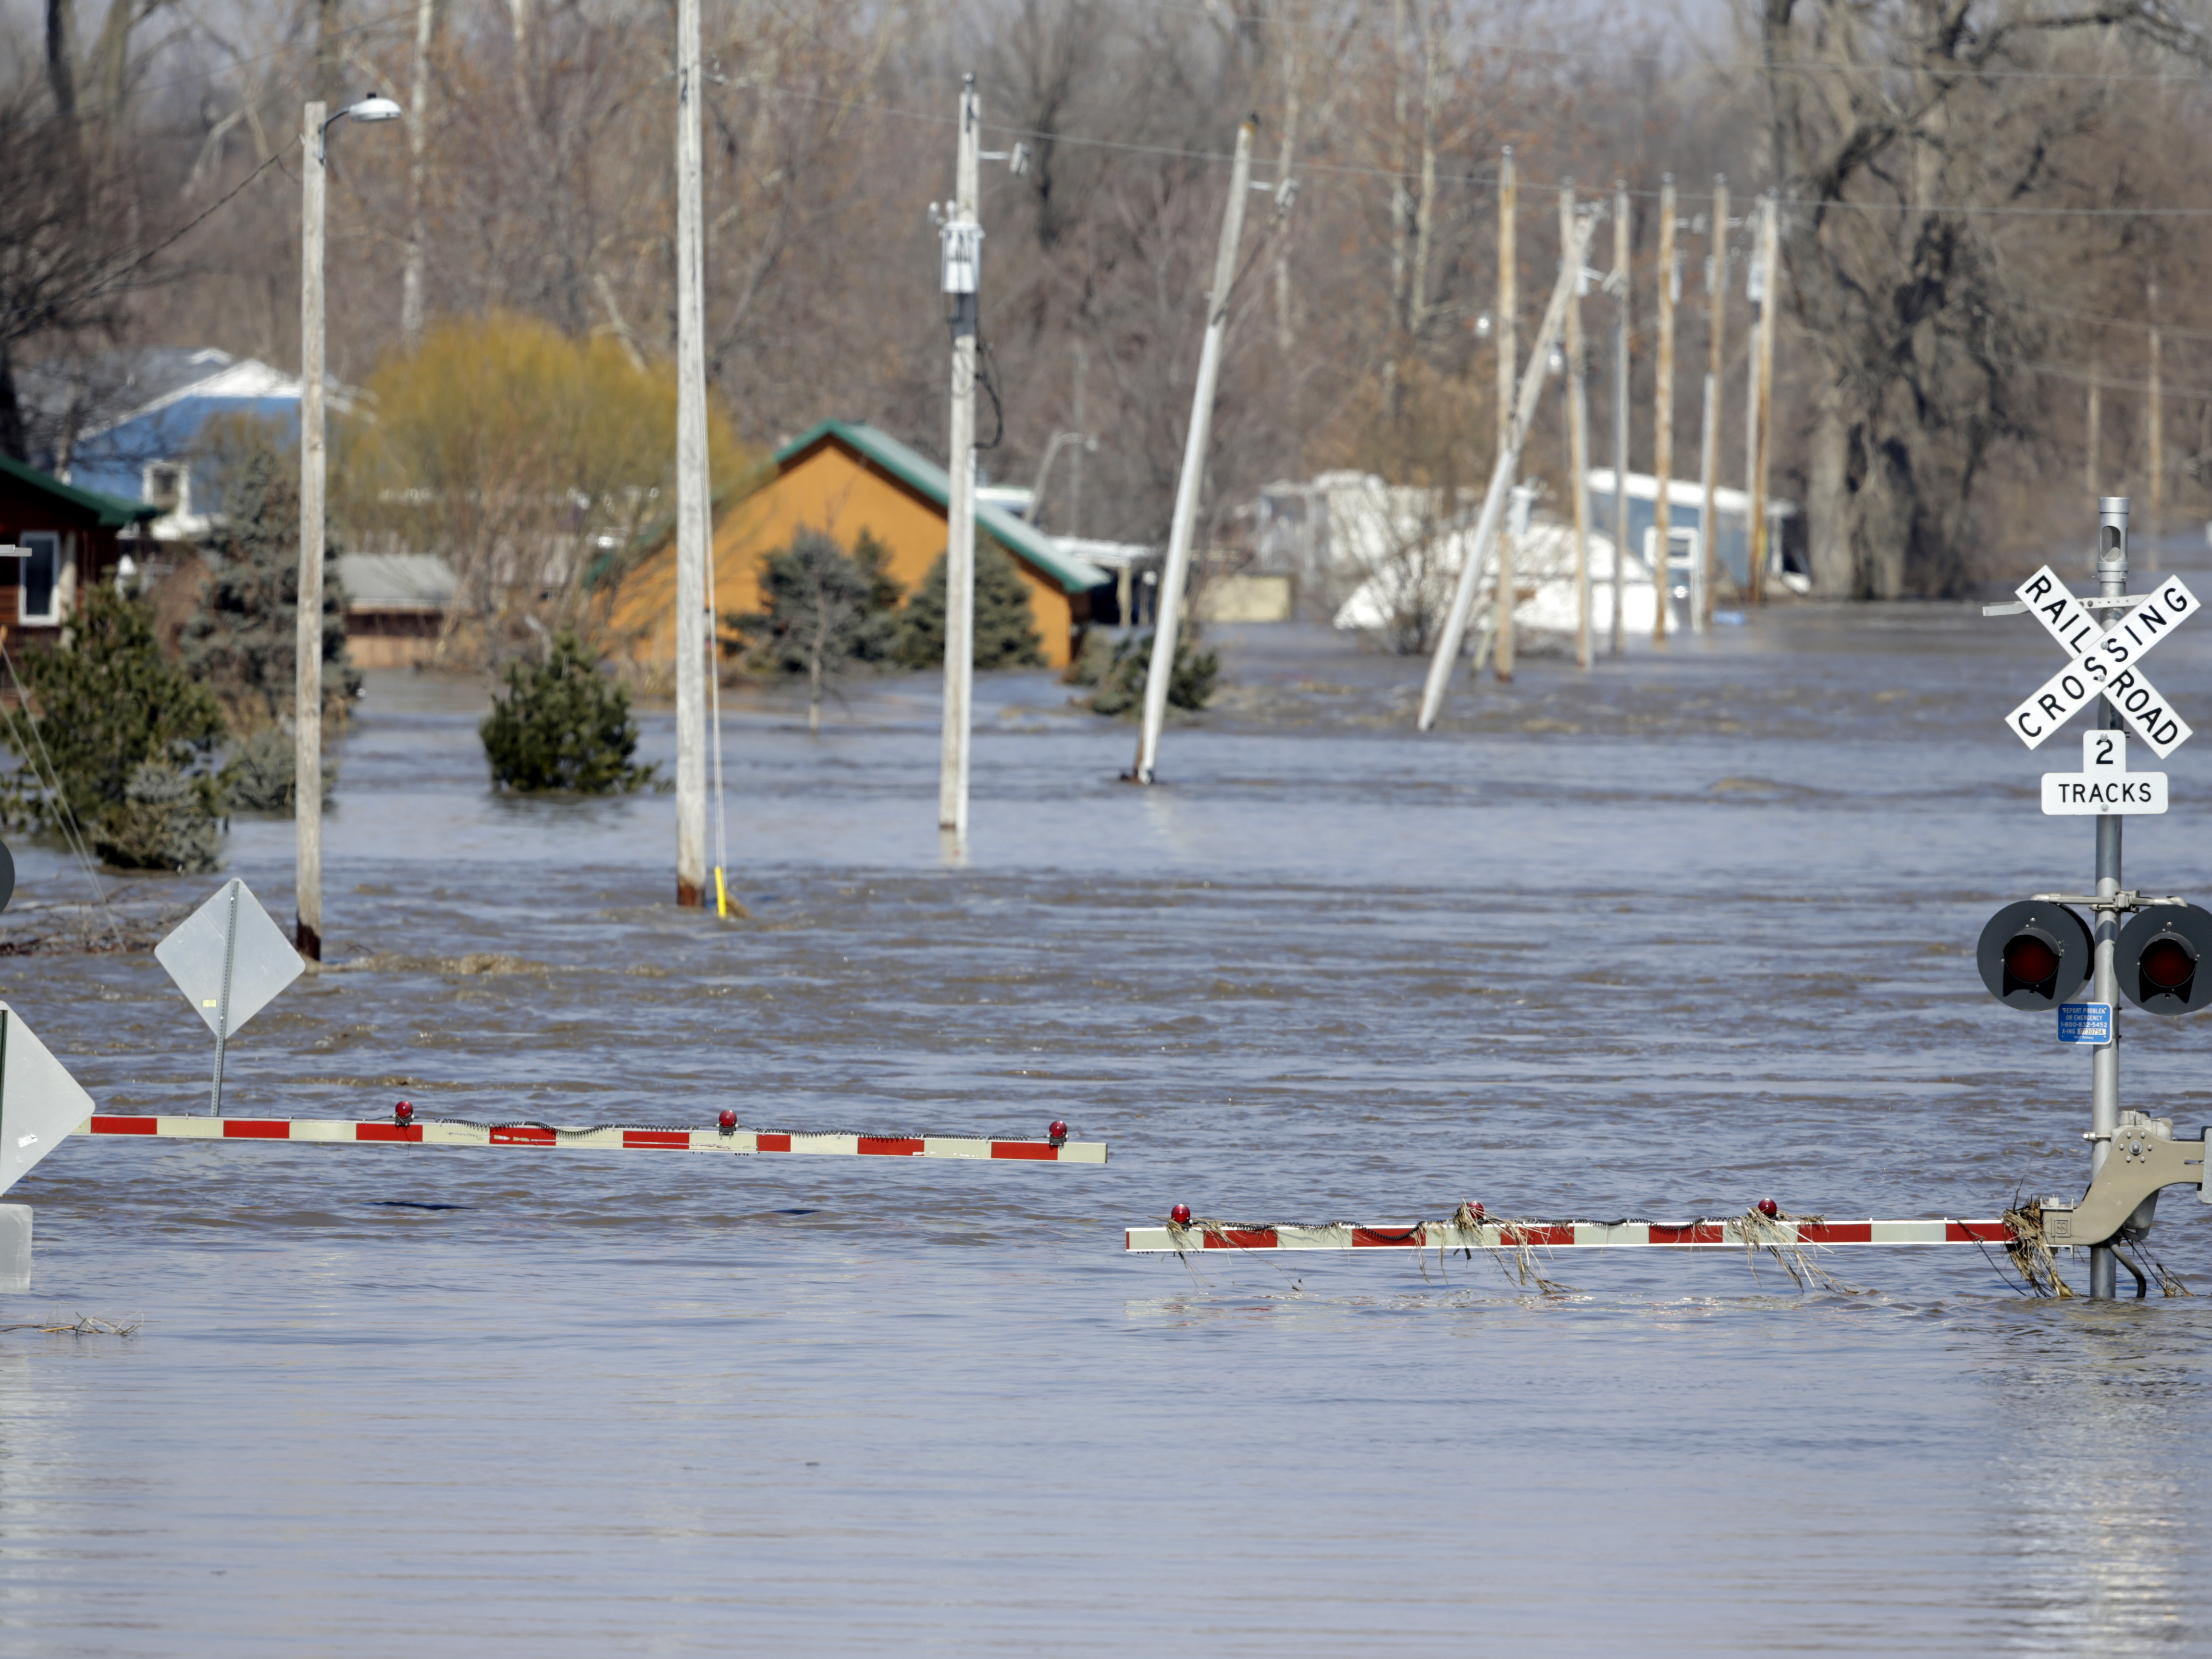 Nebraska Floods: 74 Cities, 65 Counties Declare A State of Emergency